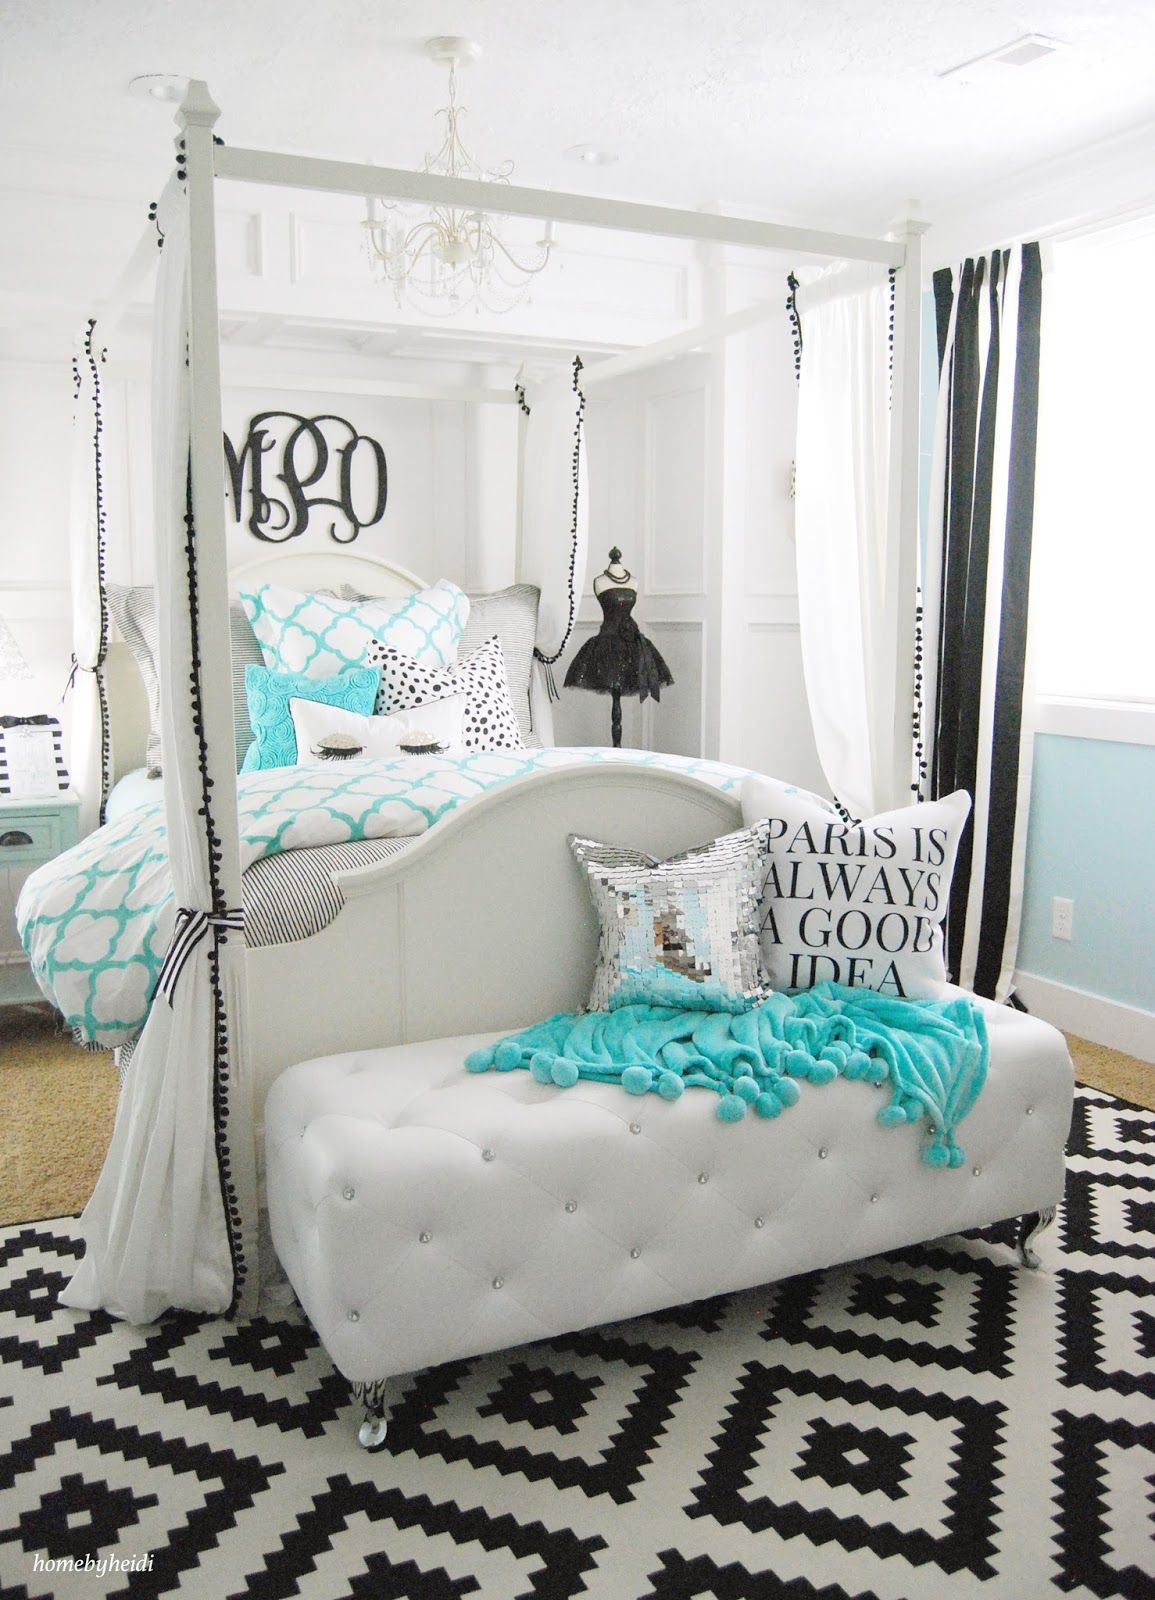 Teen Bed Ideas Amusing Tiffany Inspired Bedroom  Bedroom Ideas  Pinterest  Tiffany Design Inspiration